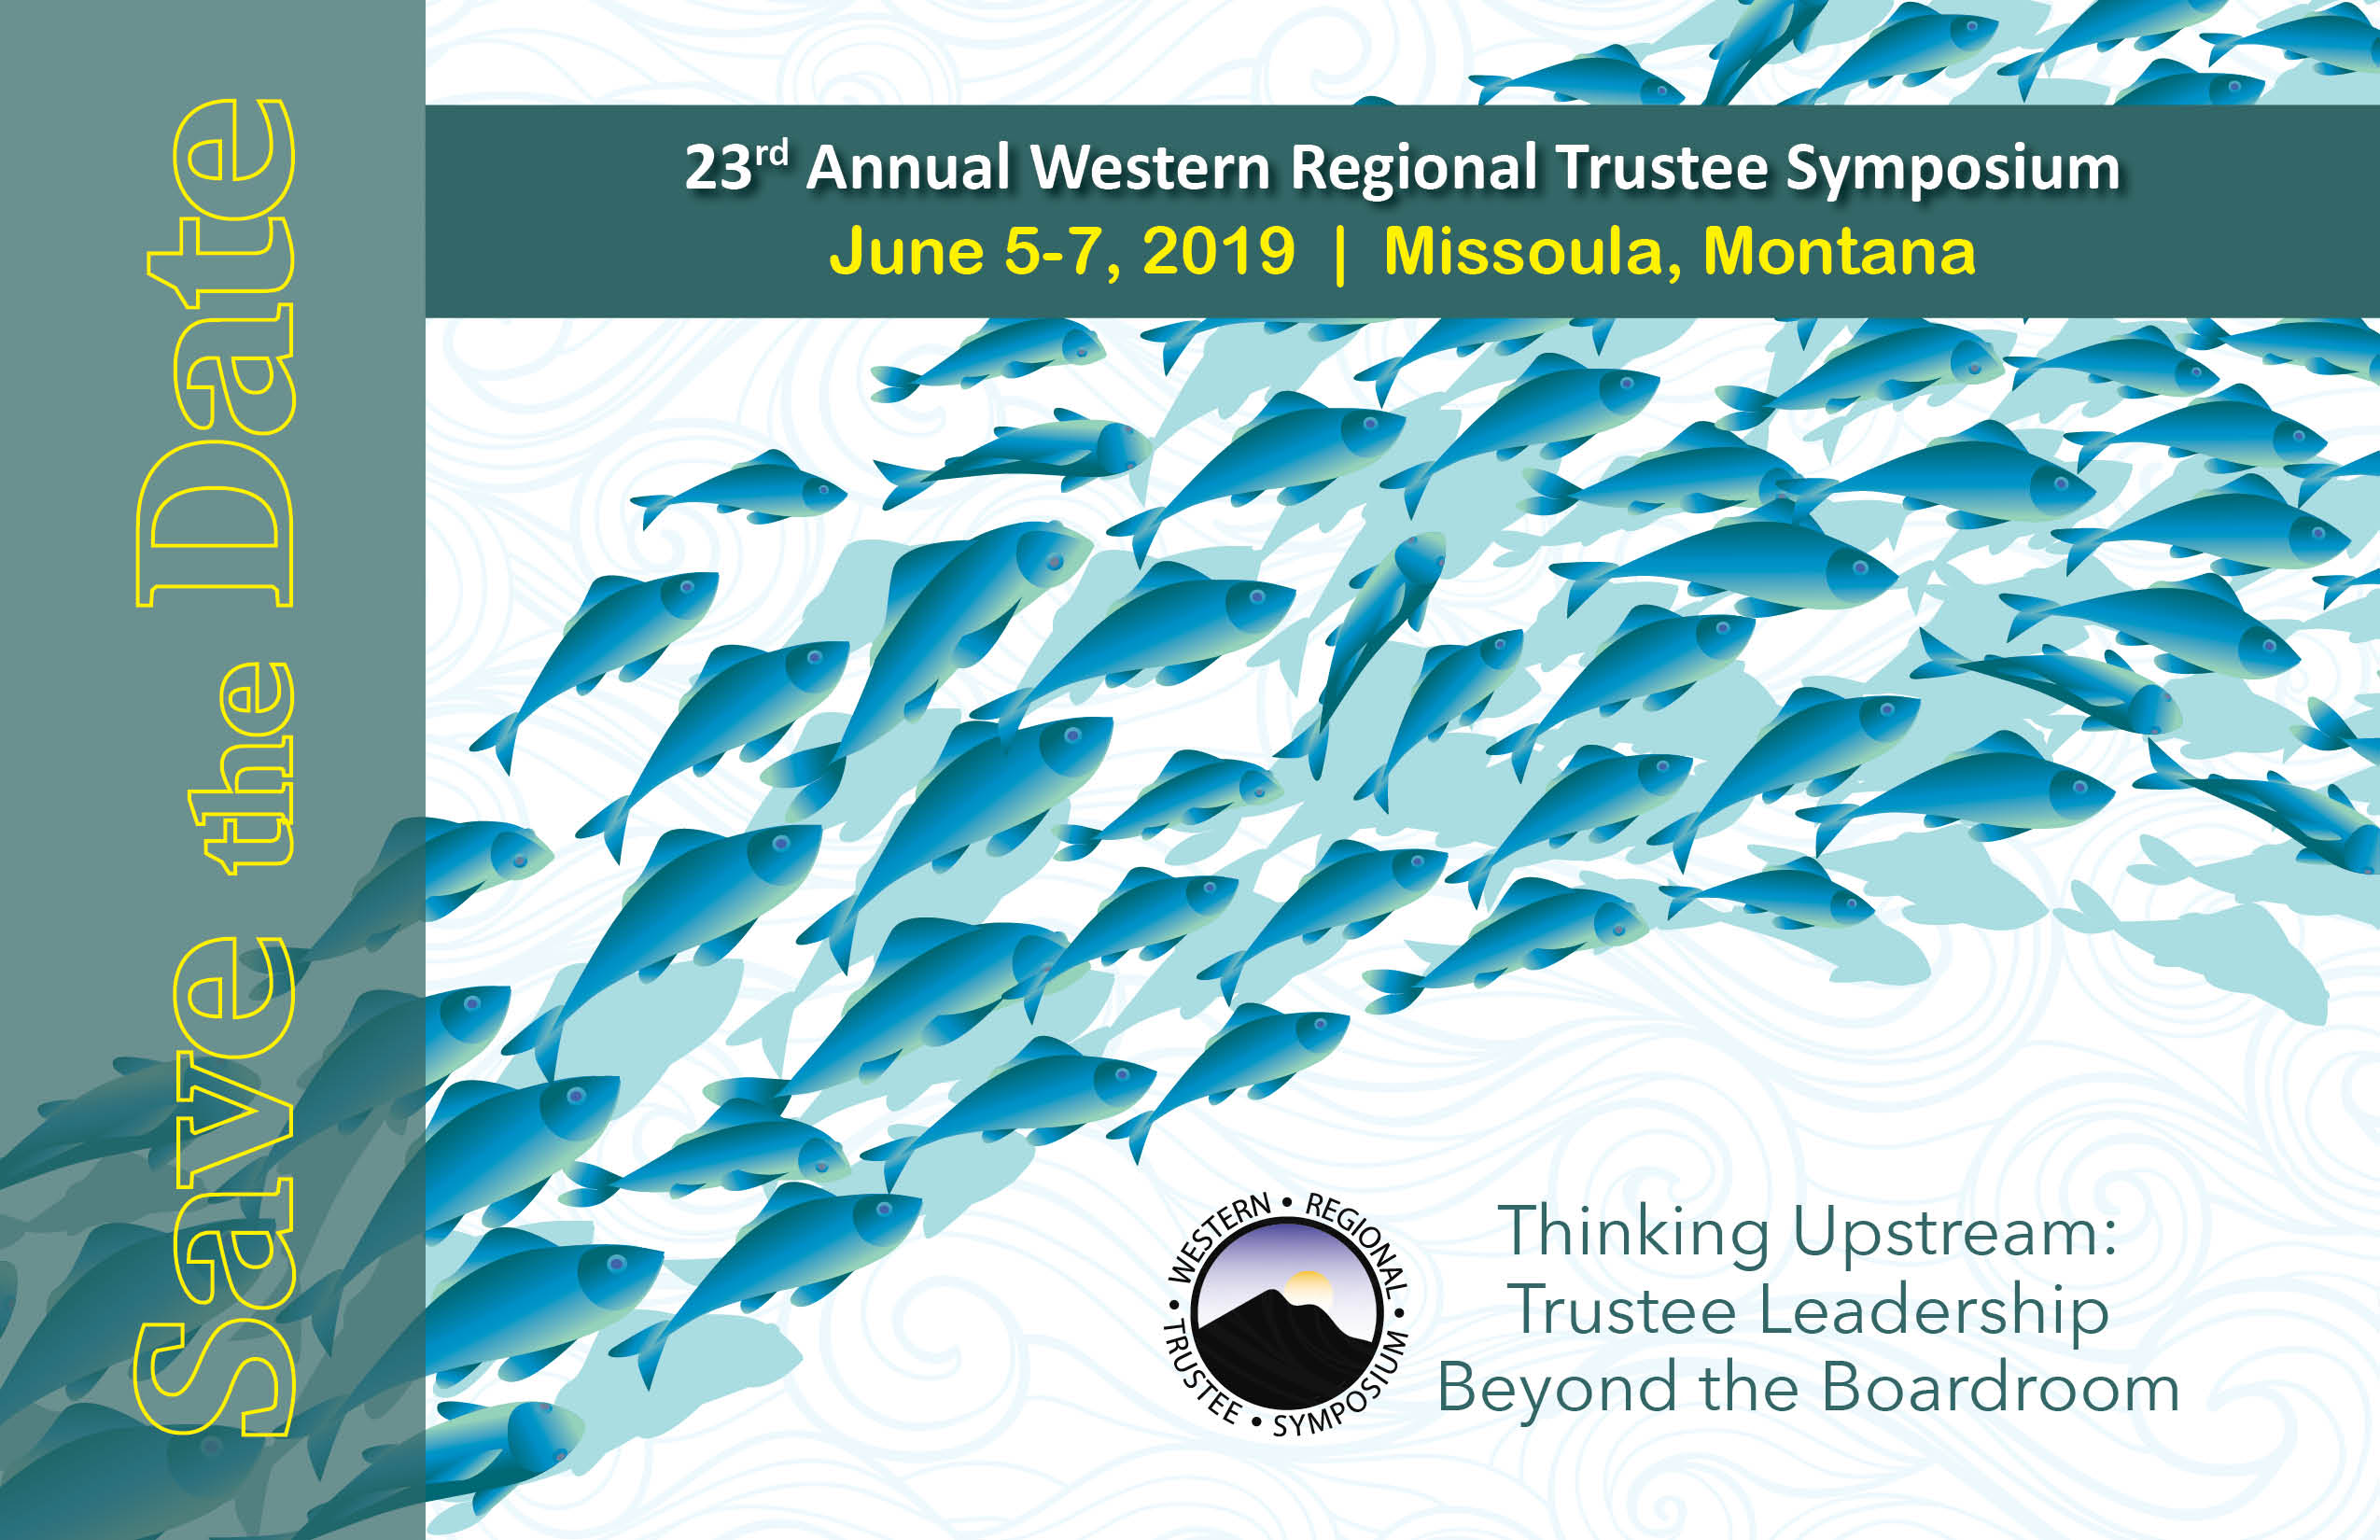 Save the Date for WRTS 2019